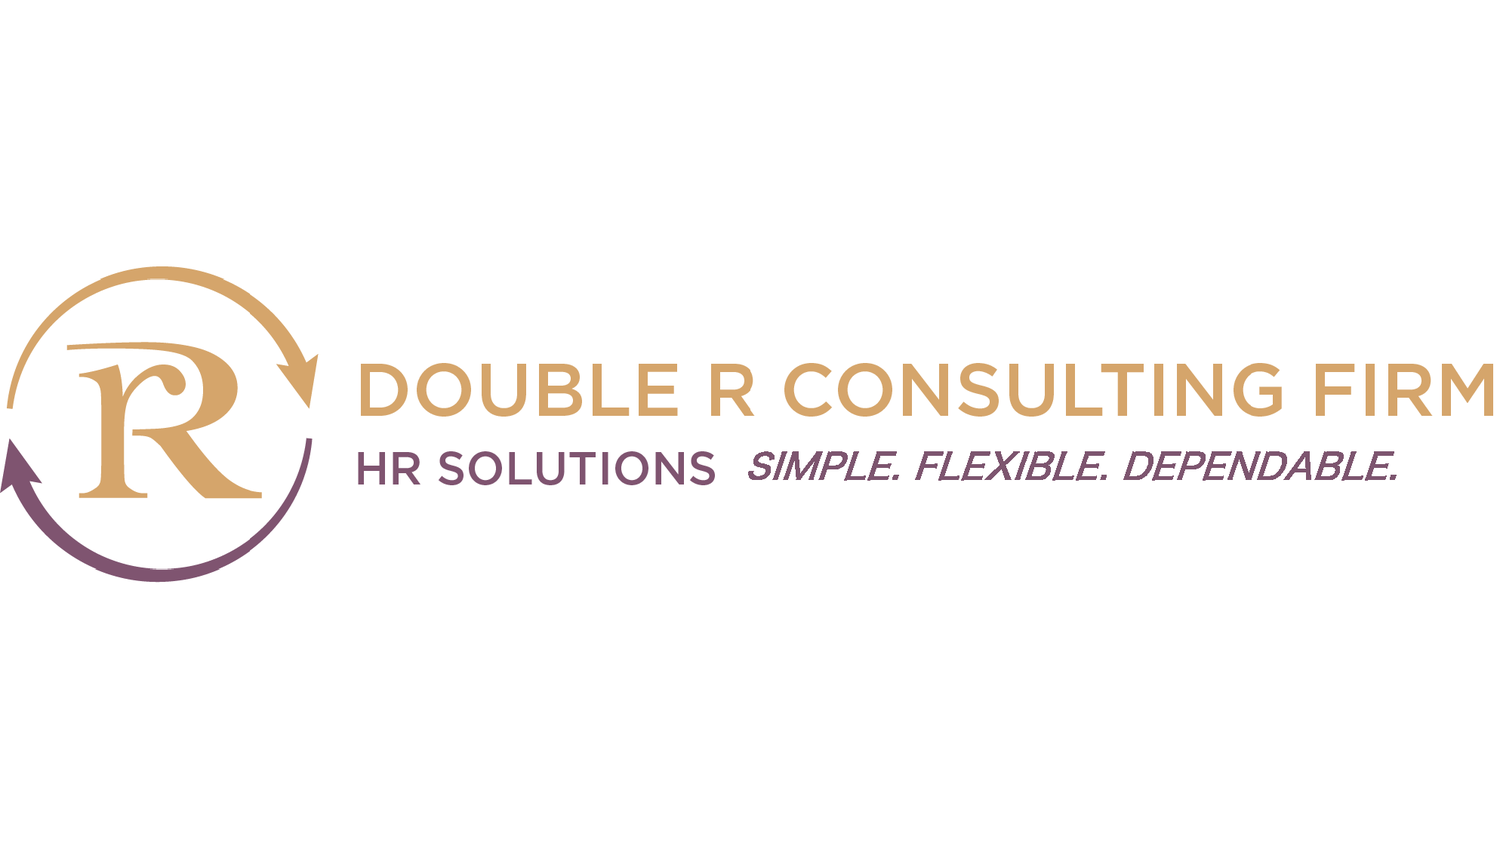 Double R Consulting Firm